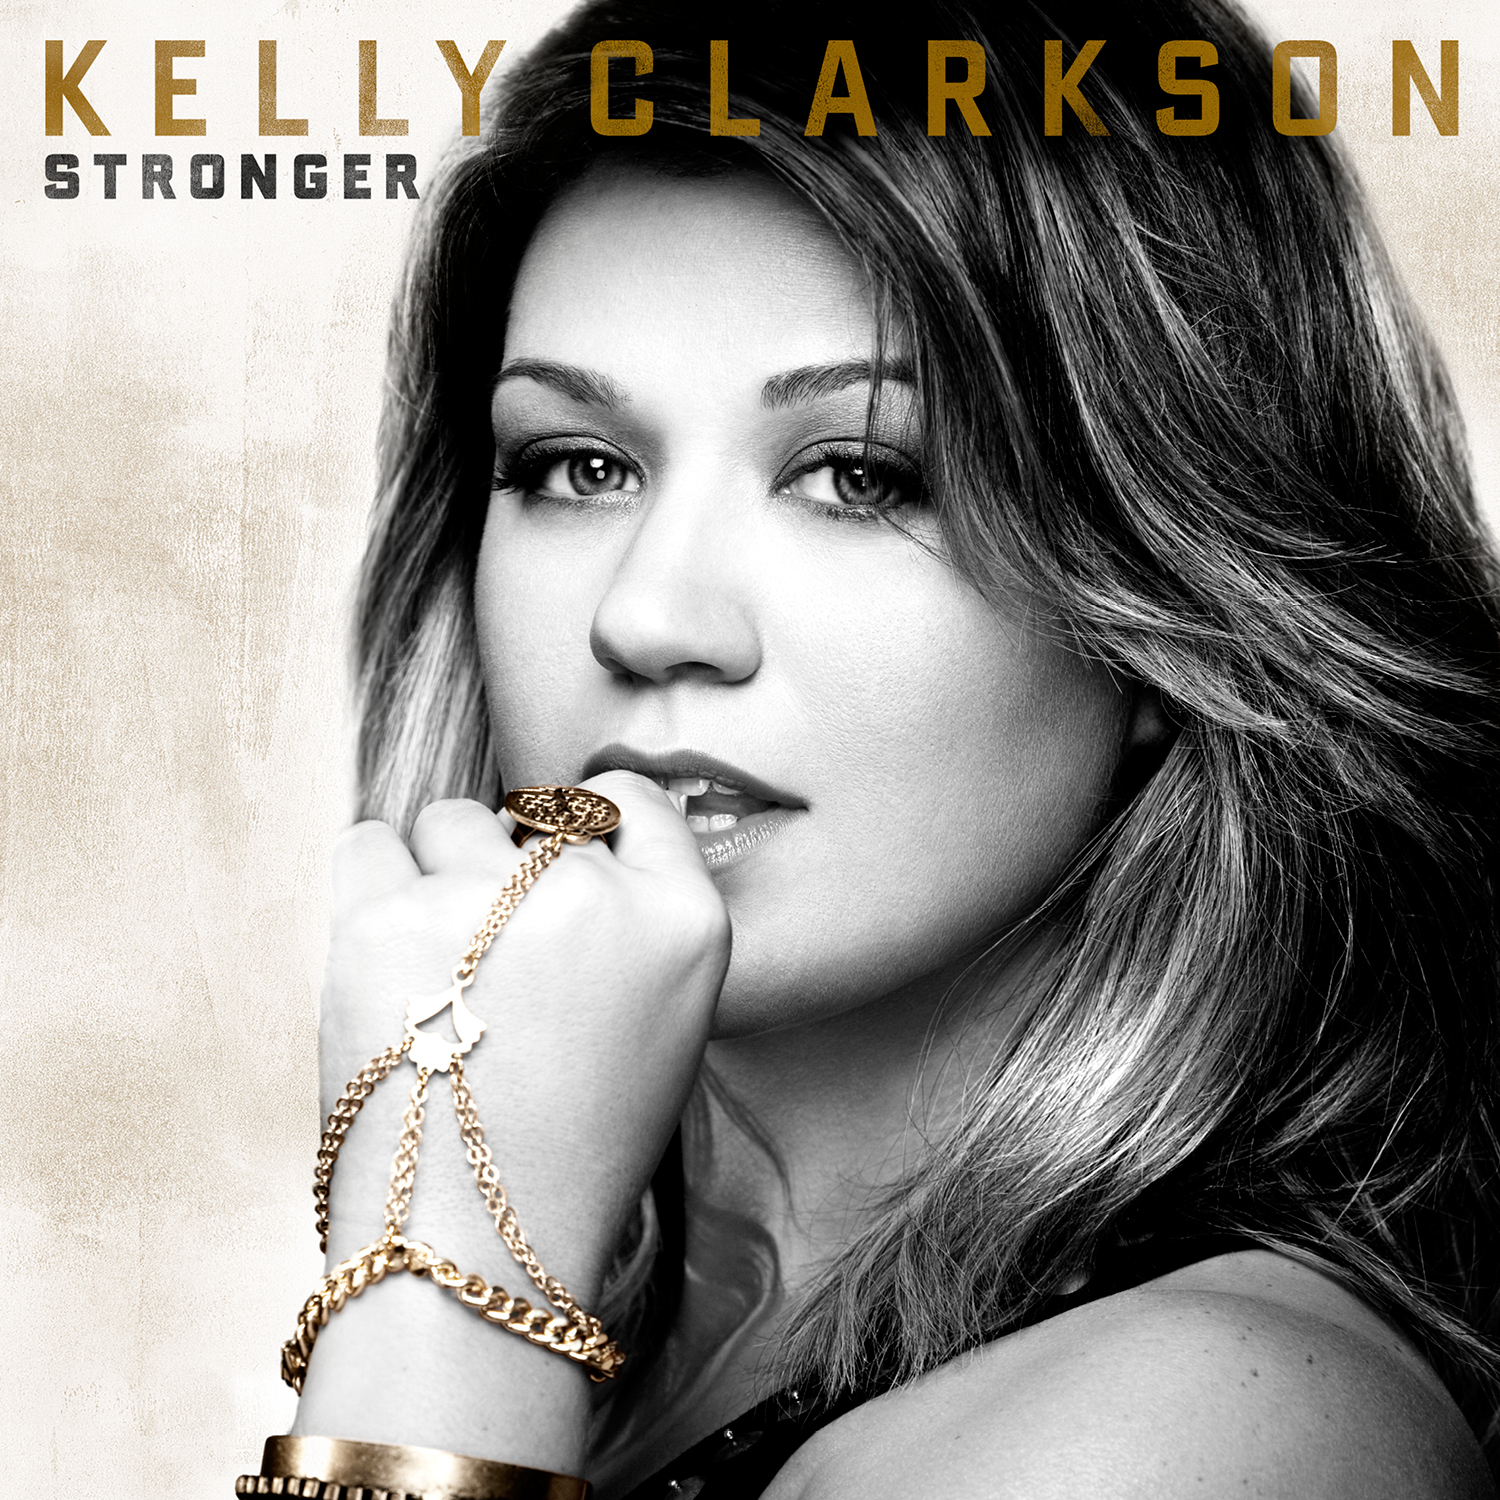 PREVIEW: Kelly Clarkson – What Doesn't Kill You (Promise Land Remix)